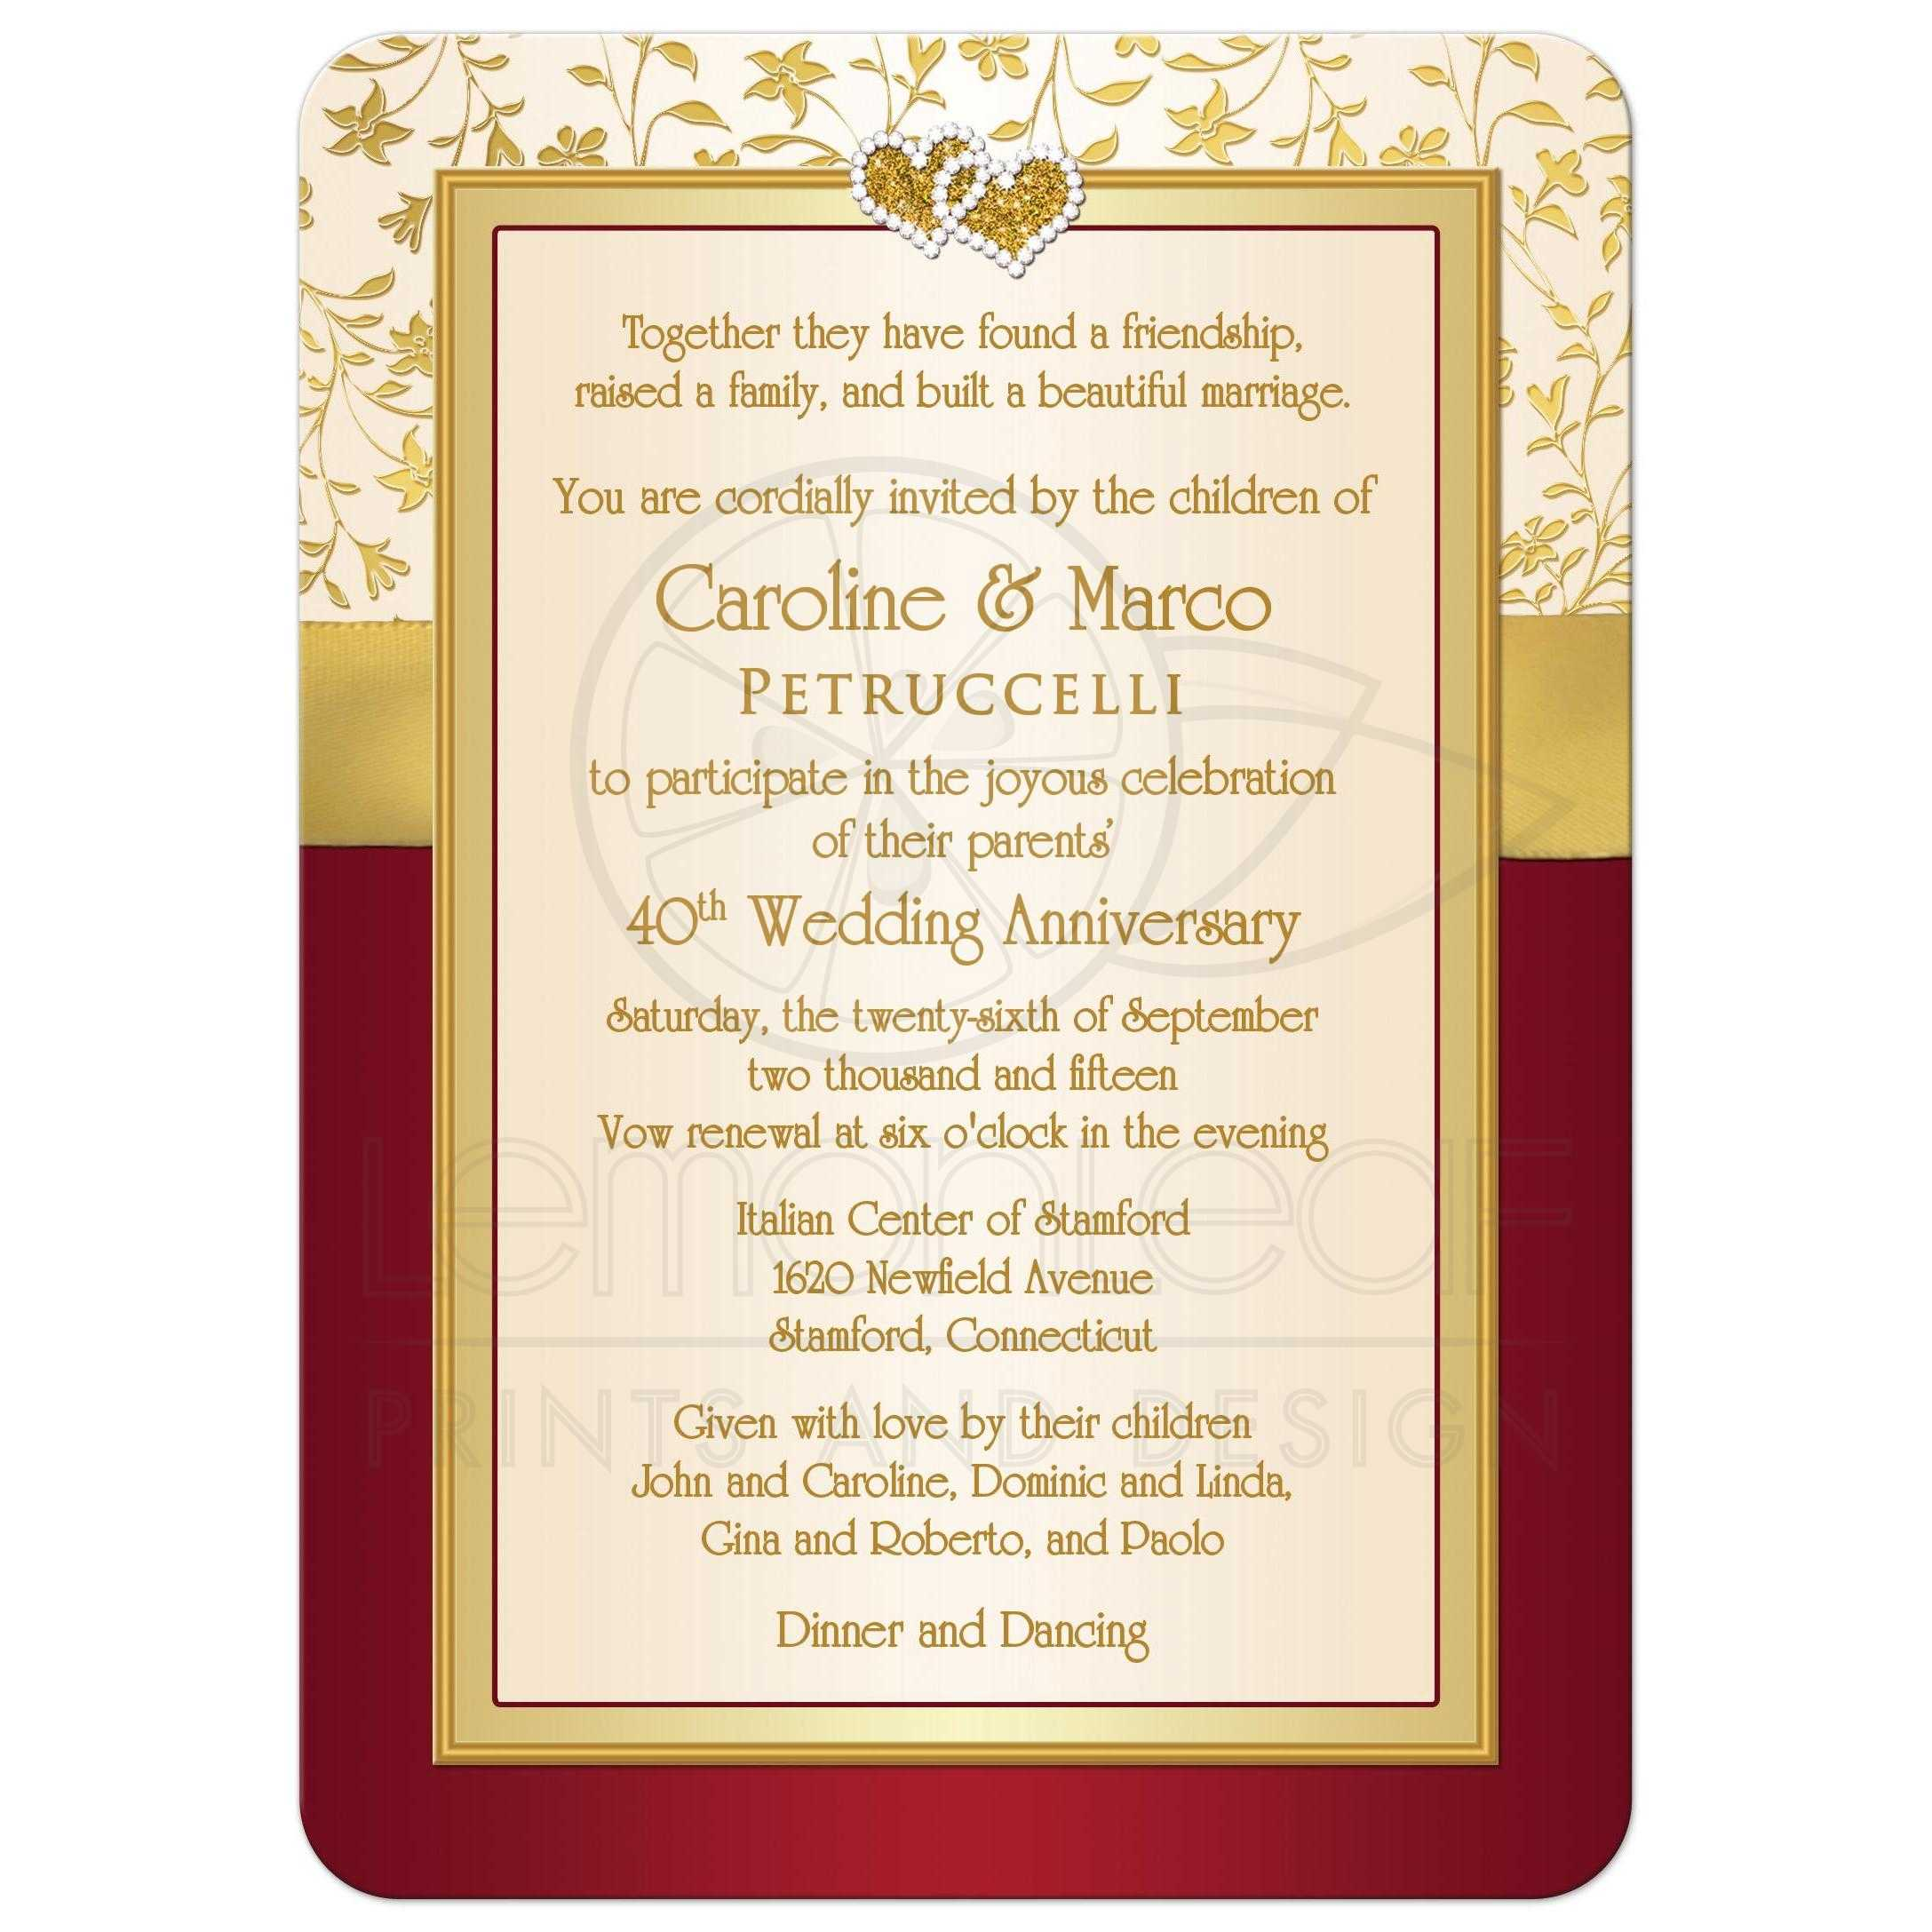 40th Wedding Anniversary Invitation | Red, Ivory, Gold Floral ...